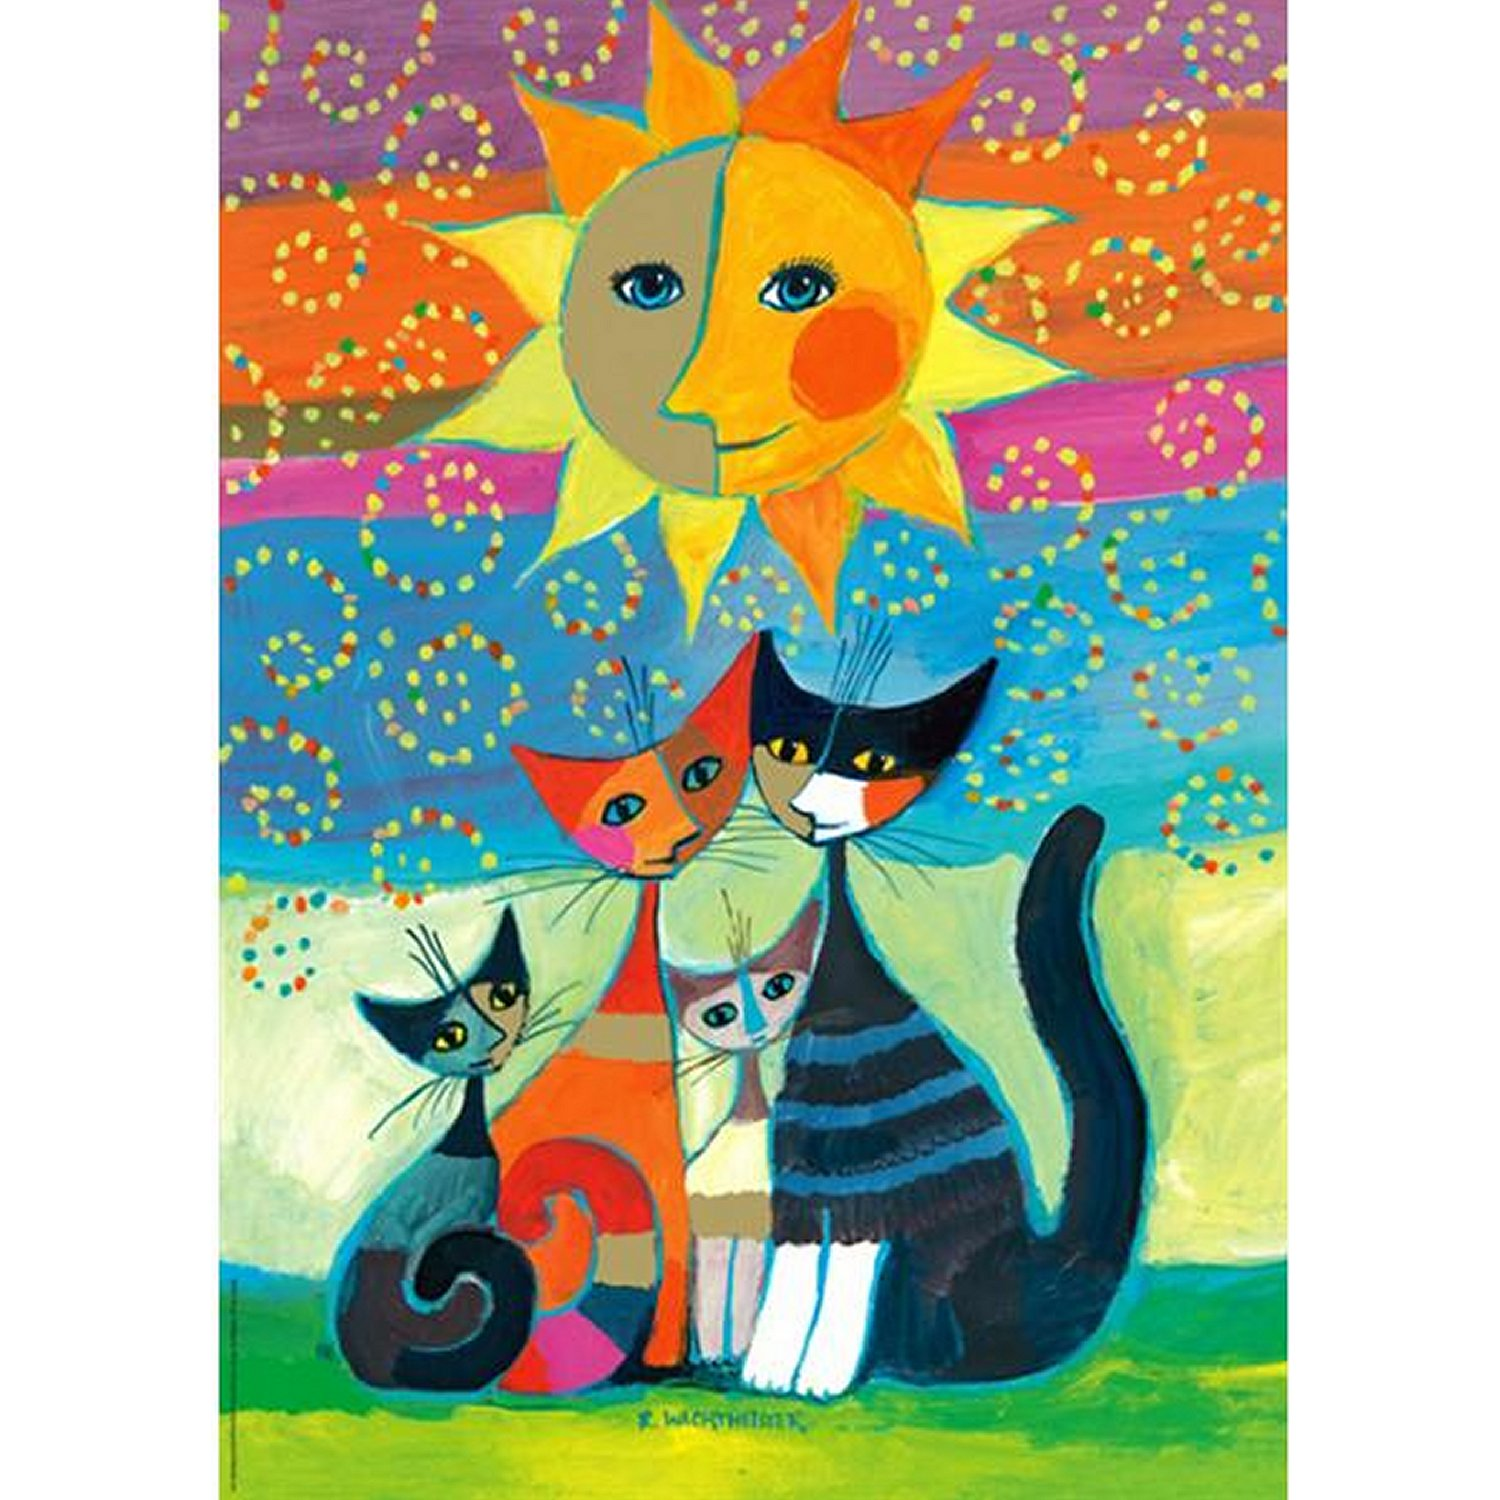 puzzle rosina wachtmeister le soleil heye 29158 1000 pi ces puzzles chats planet 39 puzzles. Black Bedroom Furniture Sets. Home Design Ideas